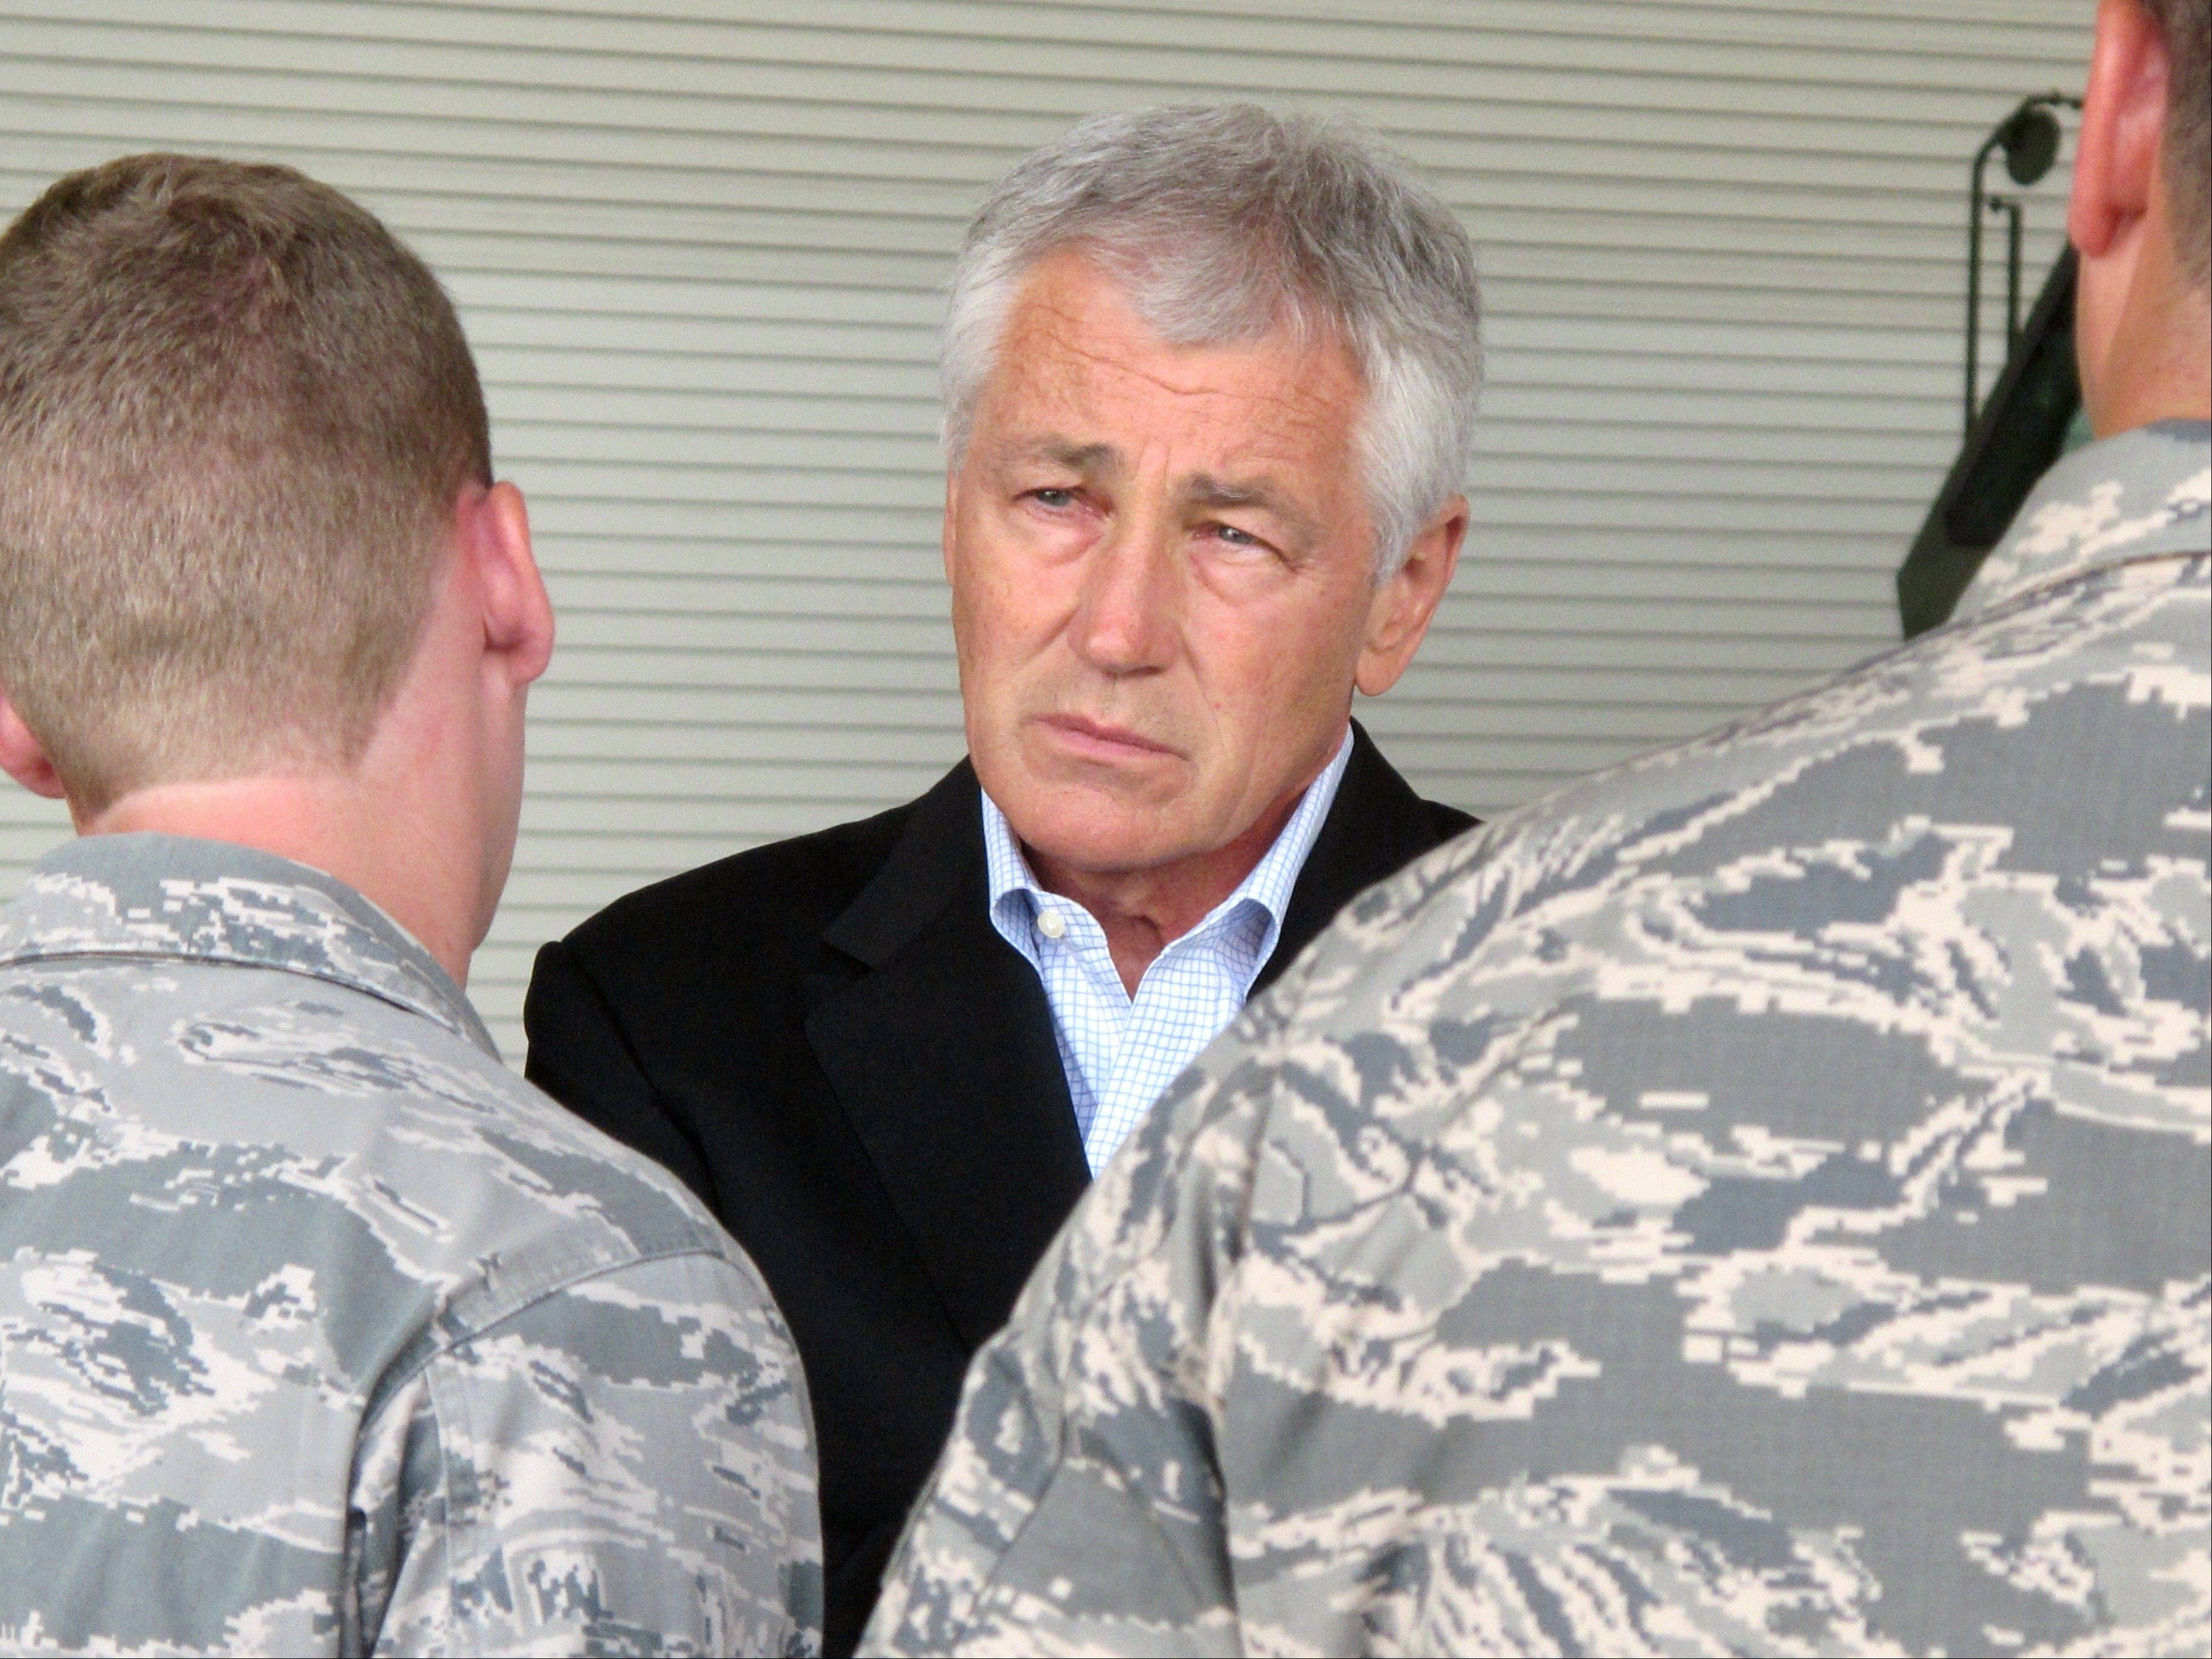 ASSOCIATED PRESSDefense Secretary Chuck Hagel talks with Air Force personnel at Joint Base Charleston near Charleston, S.C., July 17, the last day of a three-day trip to visit bases in the Carolinas and Florida. Hagel informed Penatagon employees that cost-cutting furloughs will continue.